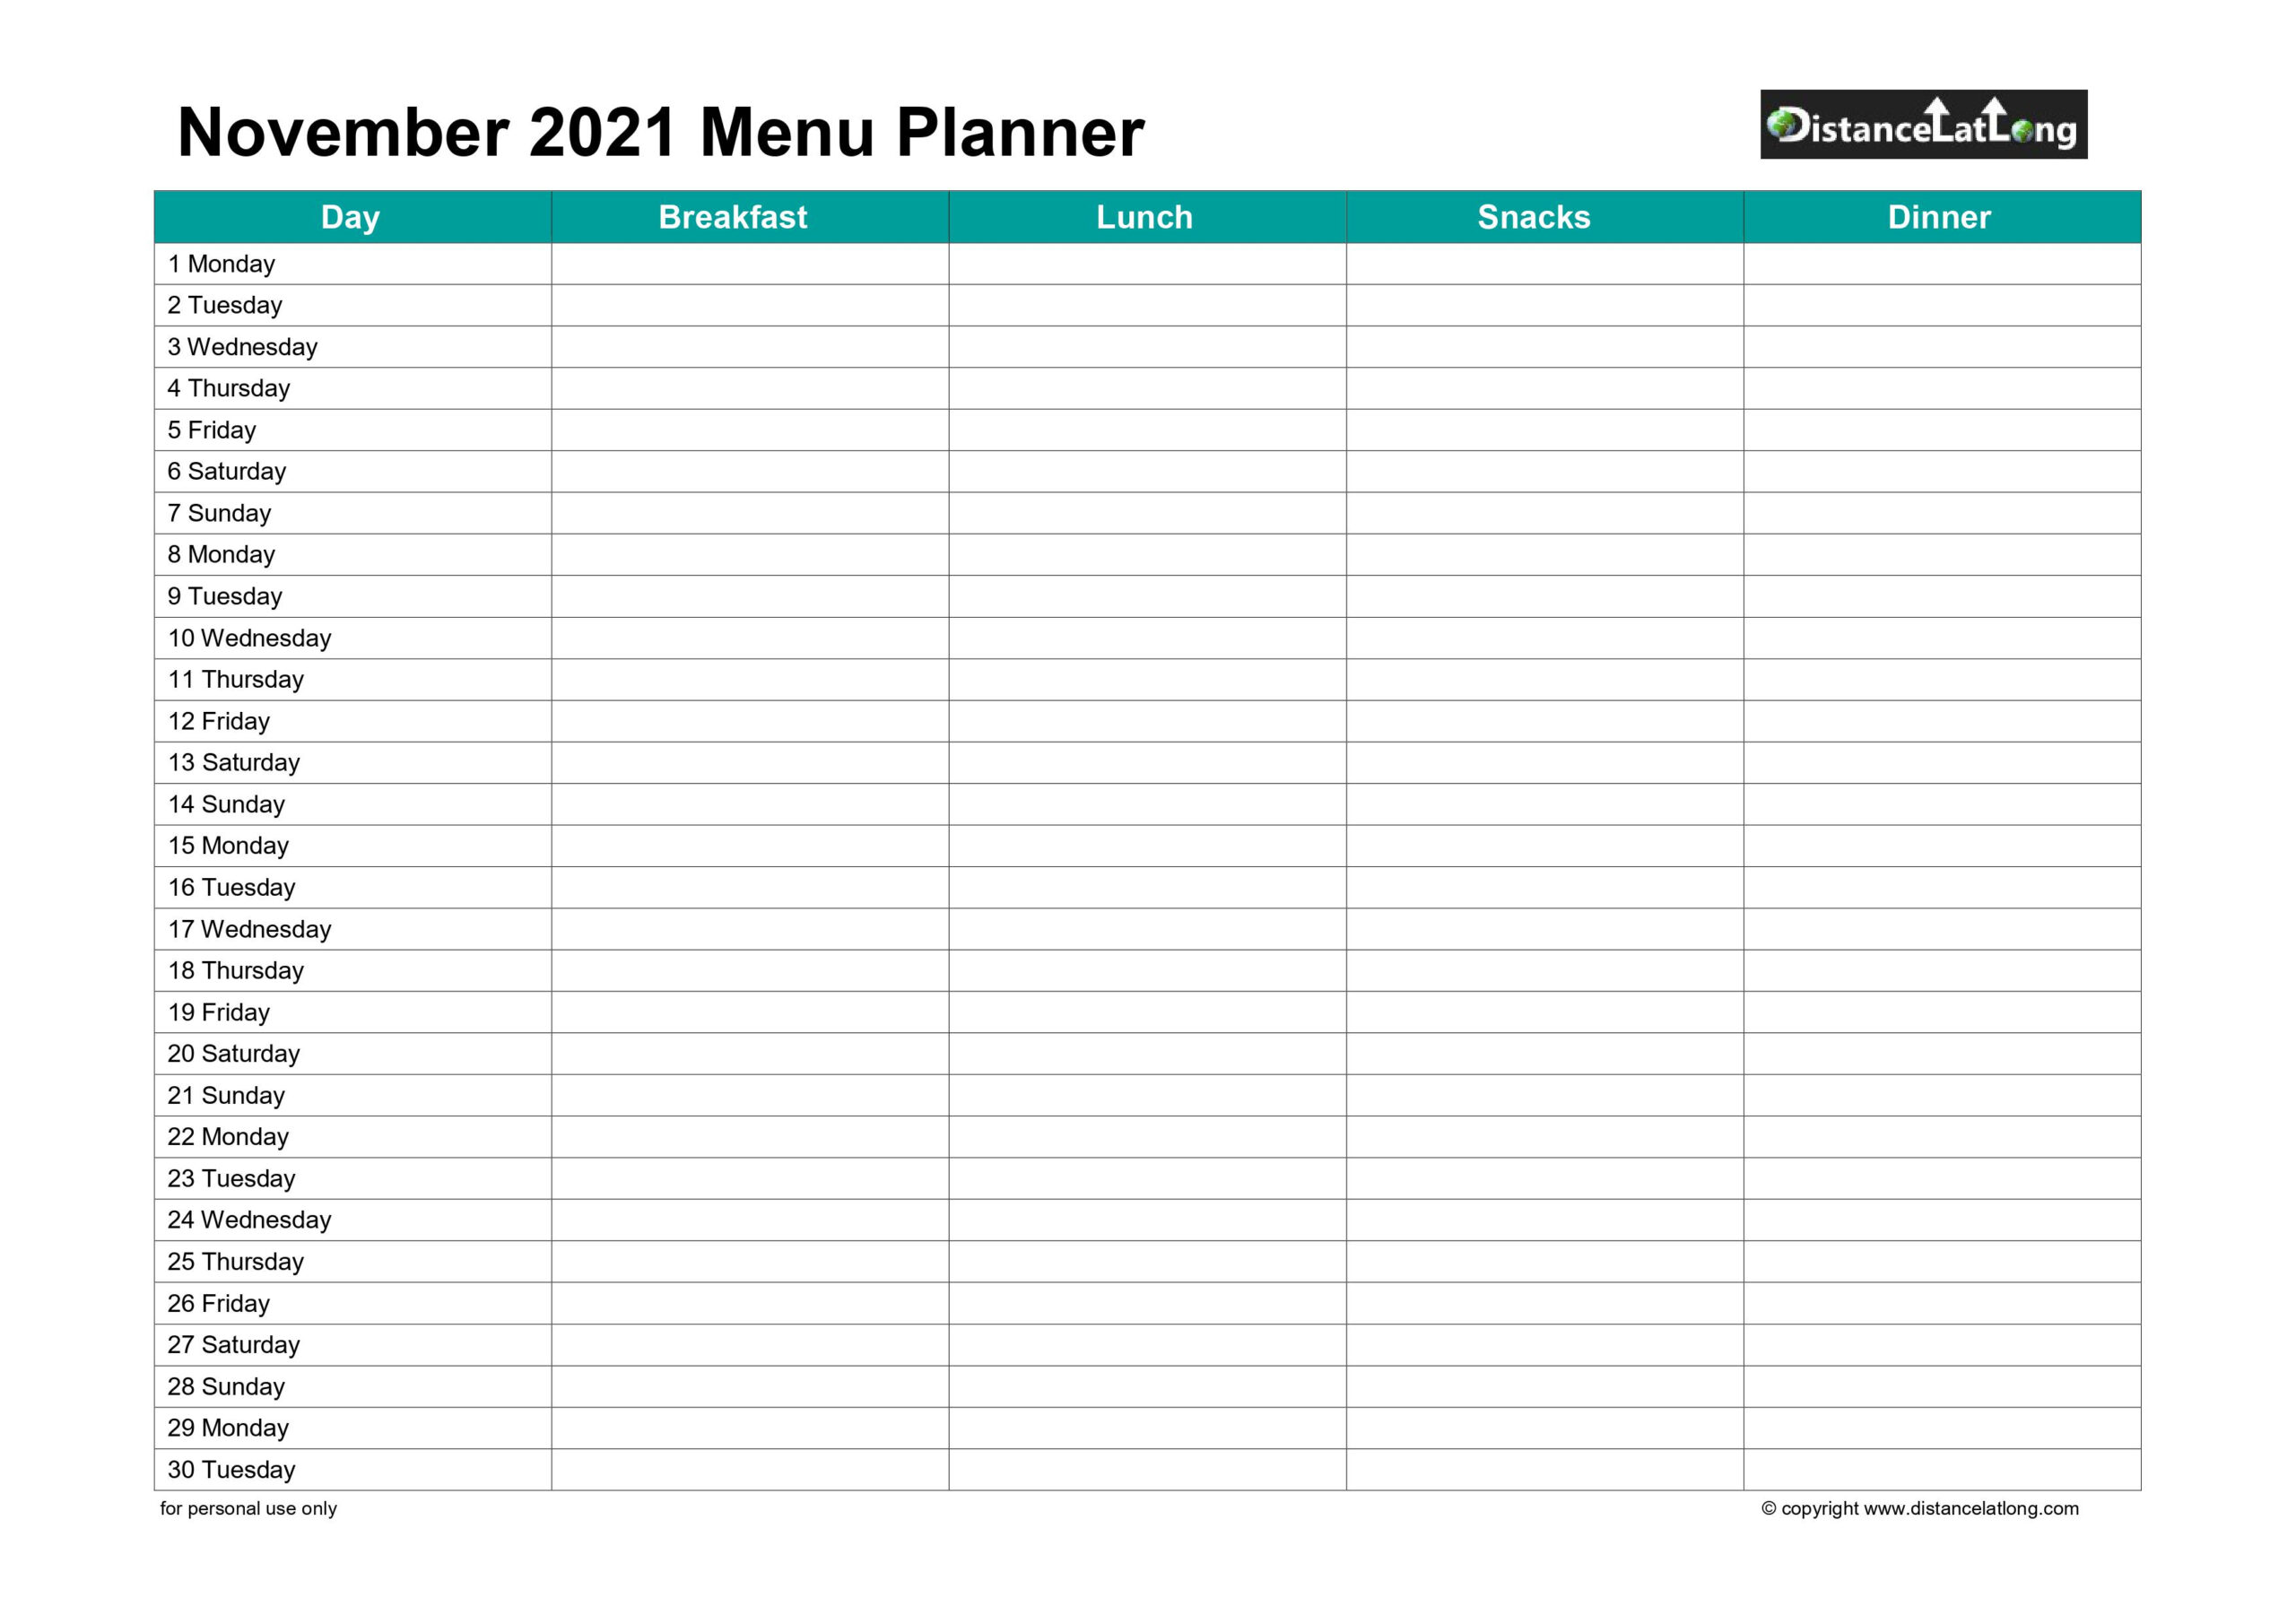 November 2021 Calendars For Pdf, Words And Jpg Formats